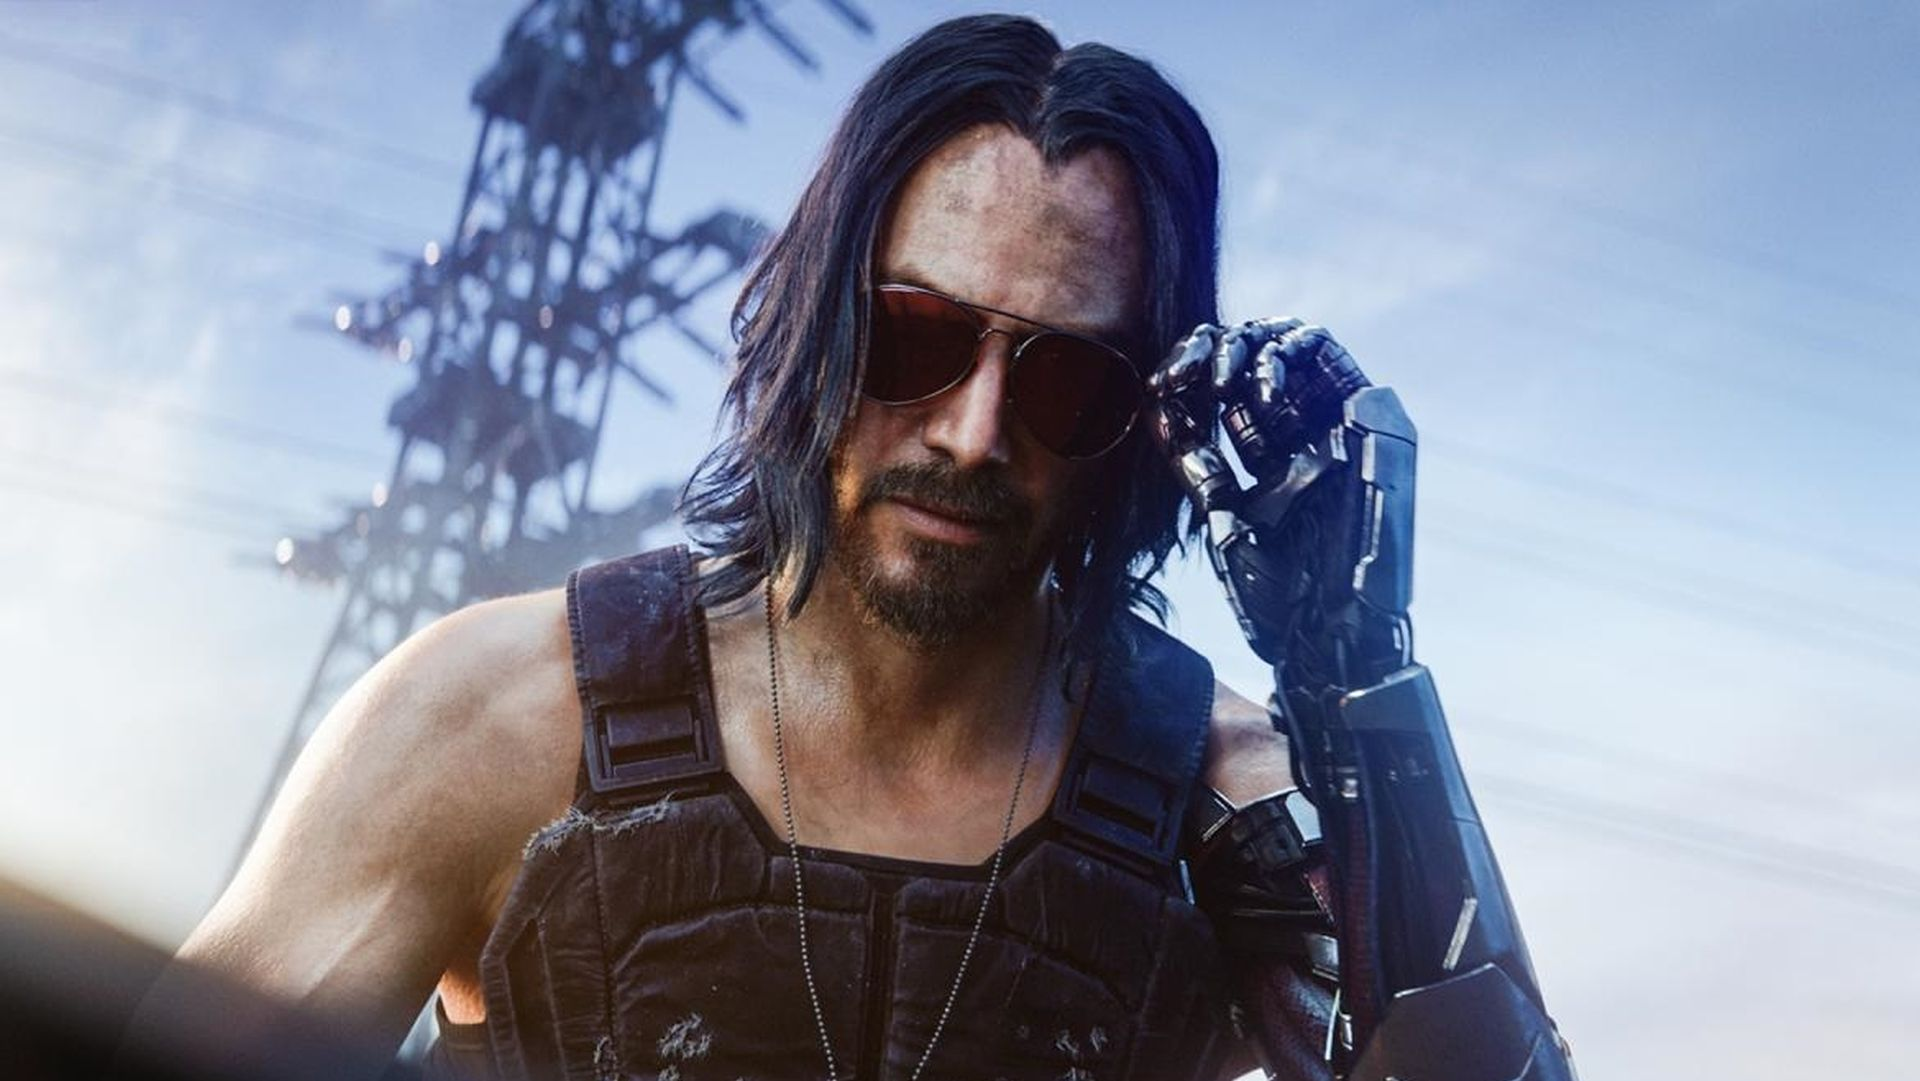 Keanu Reeves as Johnny Silverhand in Cyberpunk 2077